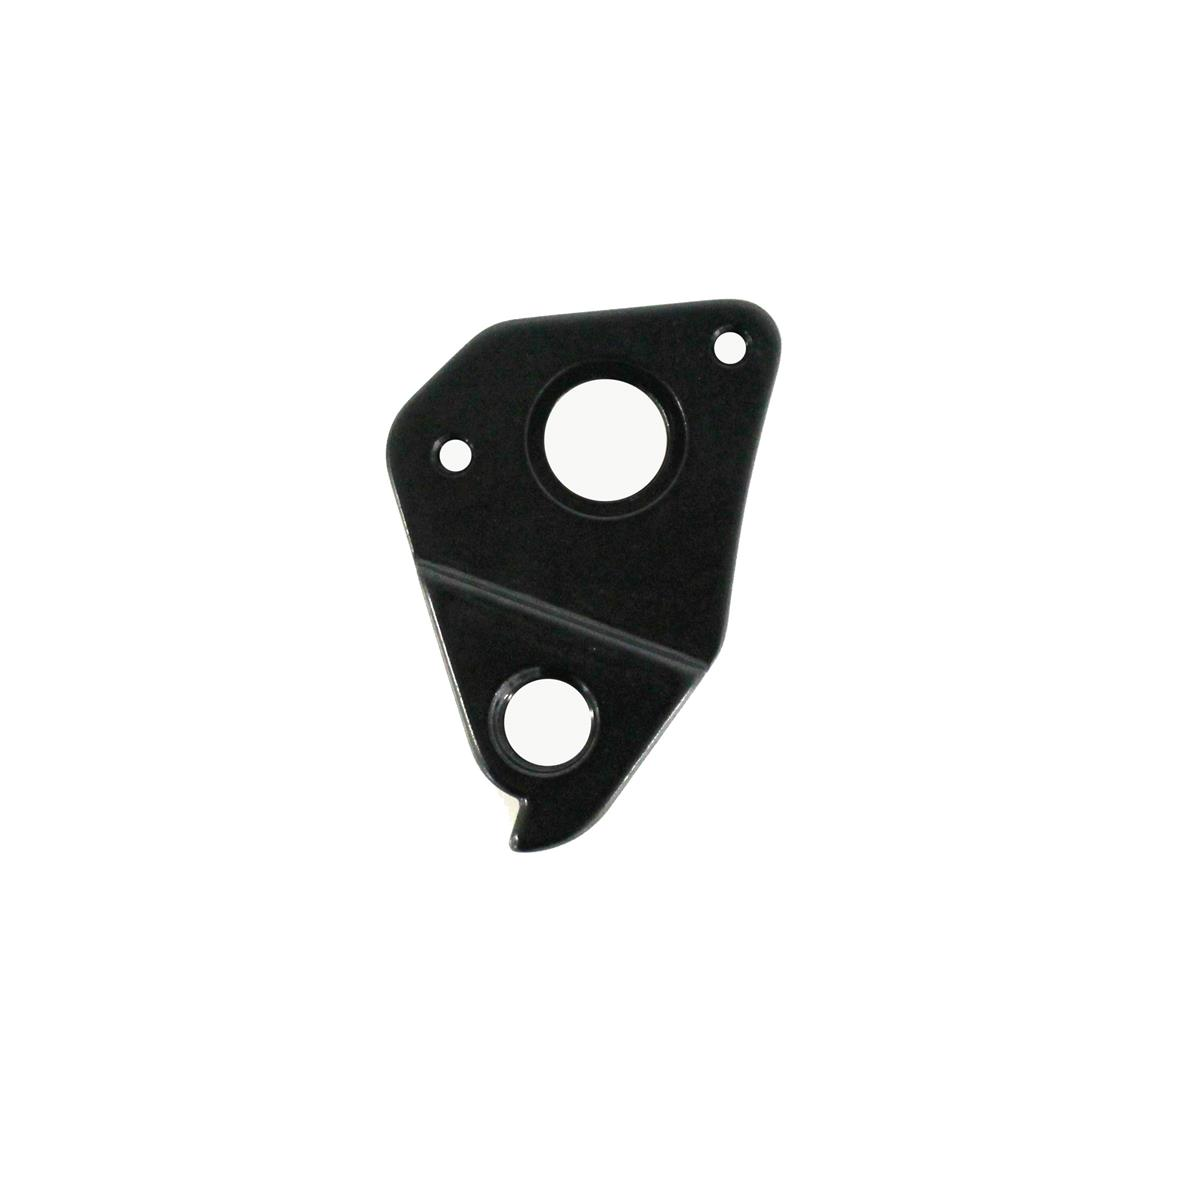 Derailleur hanger FROT0139 for all Hybride ASX models from 2020